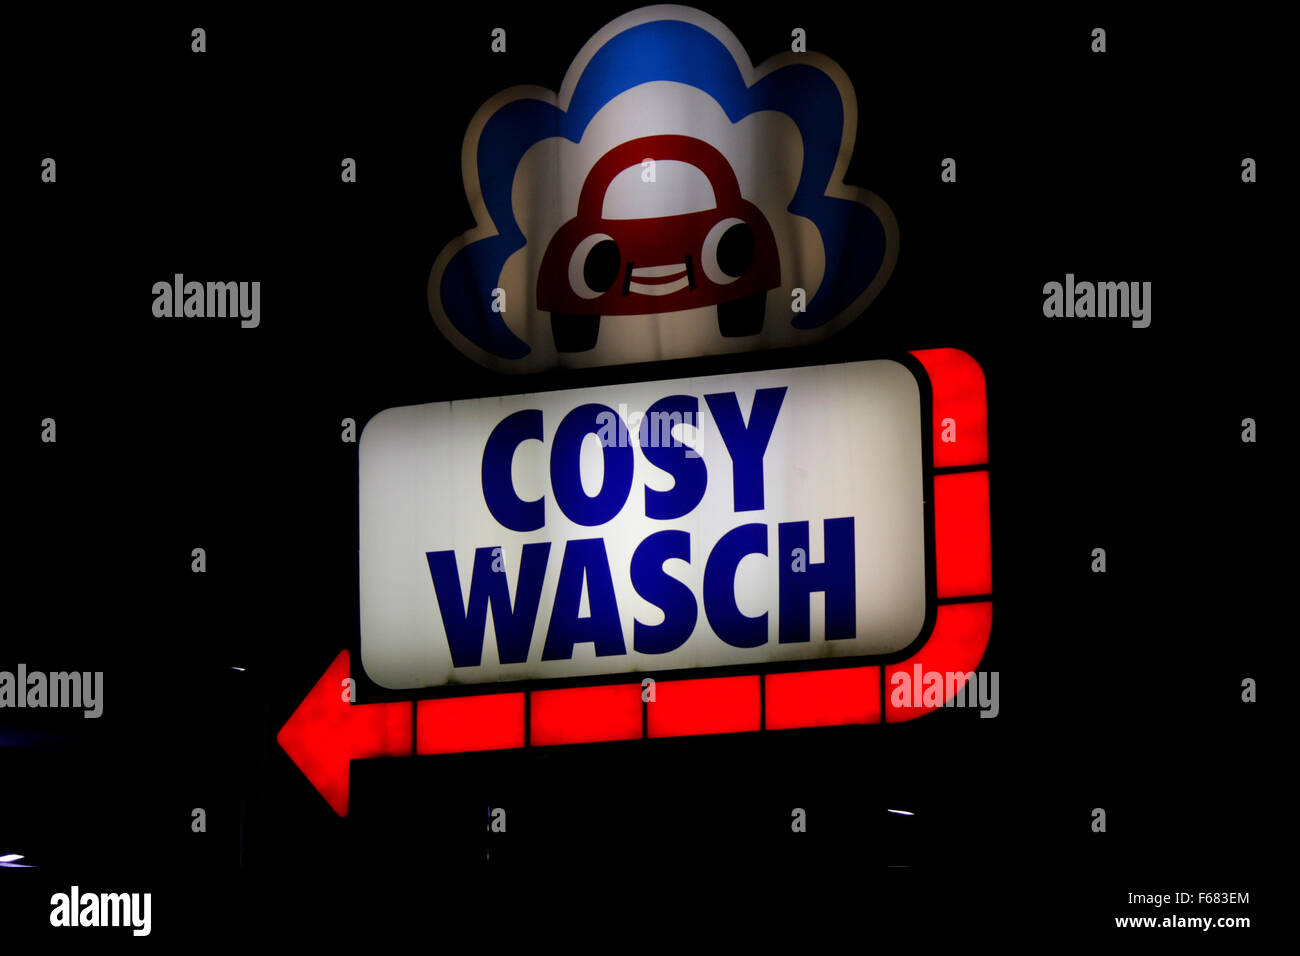 Markenname: 'Cosy Wasch', Berlin. - Stock Image